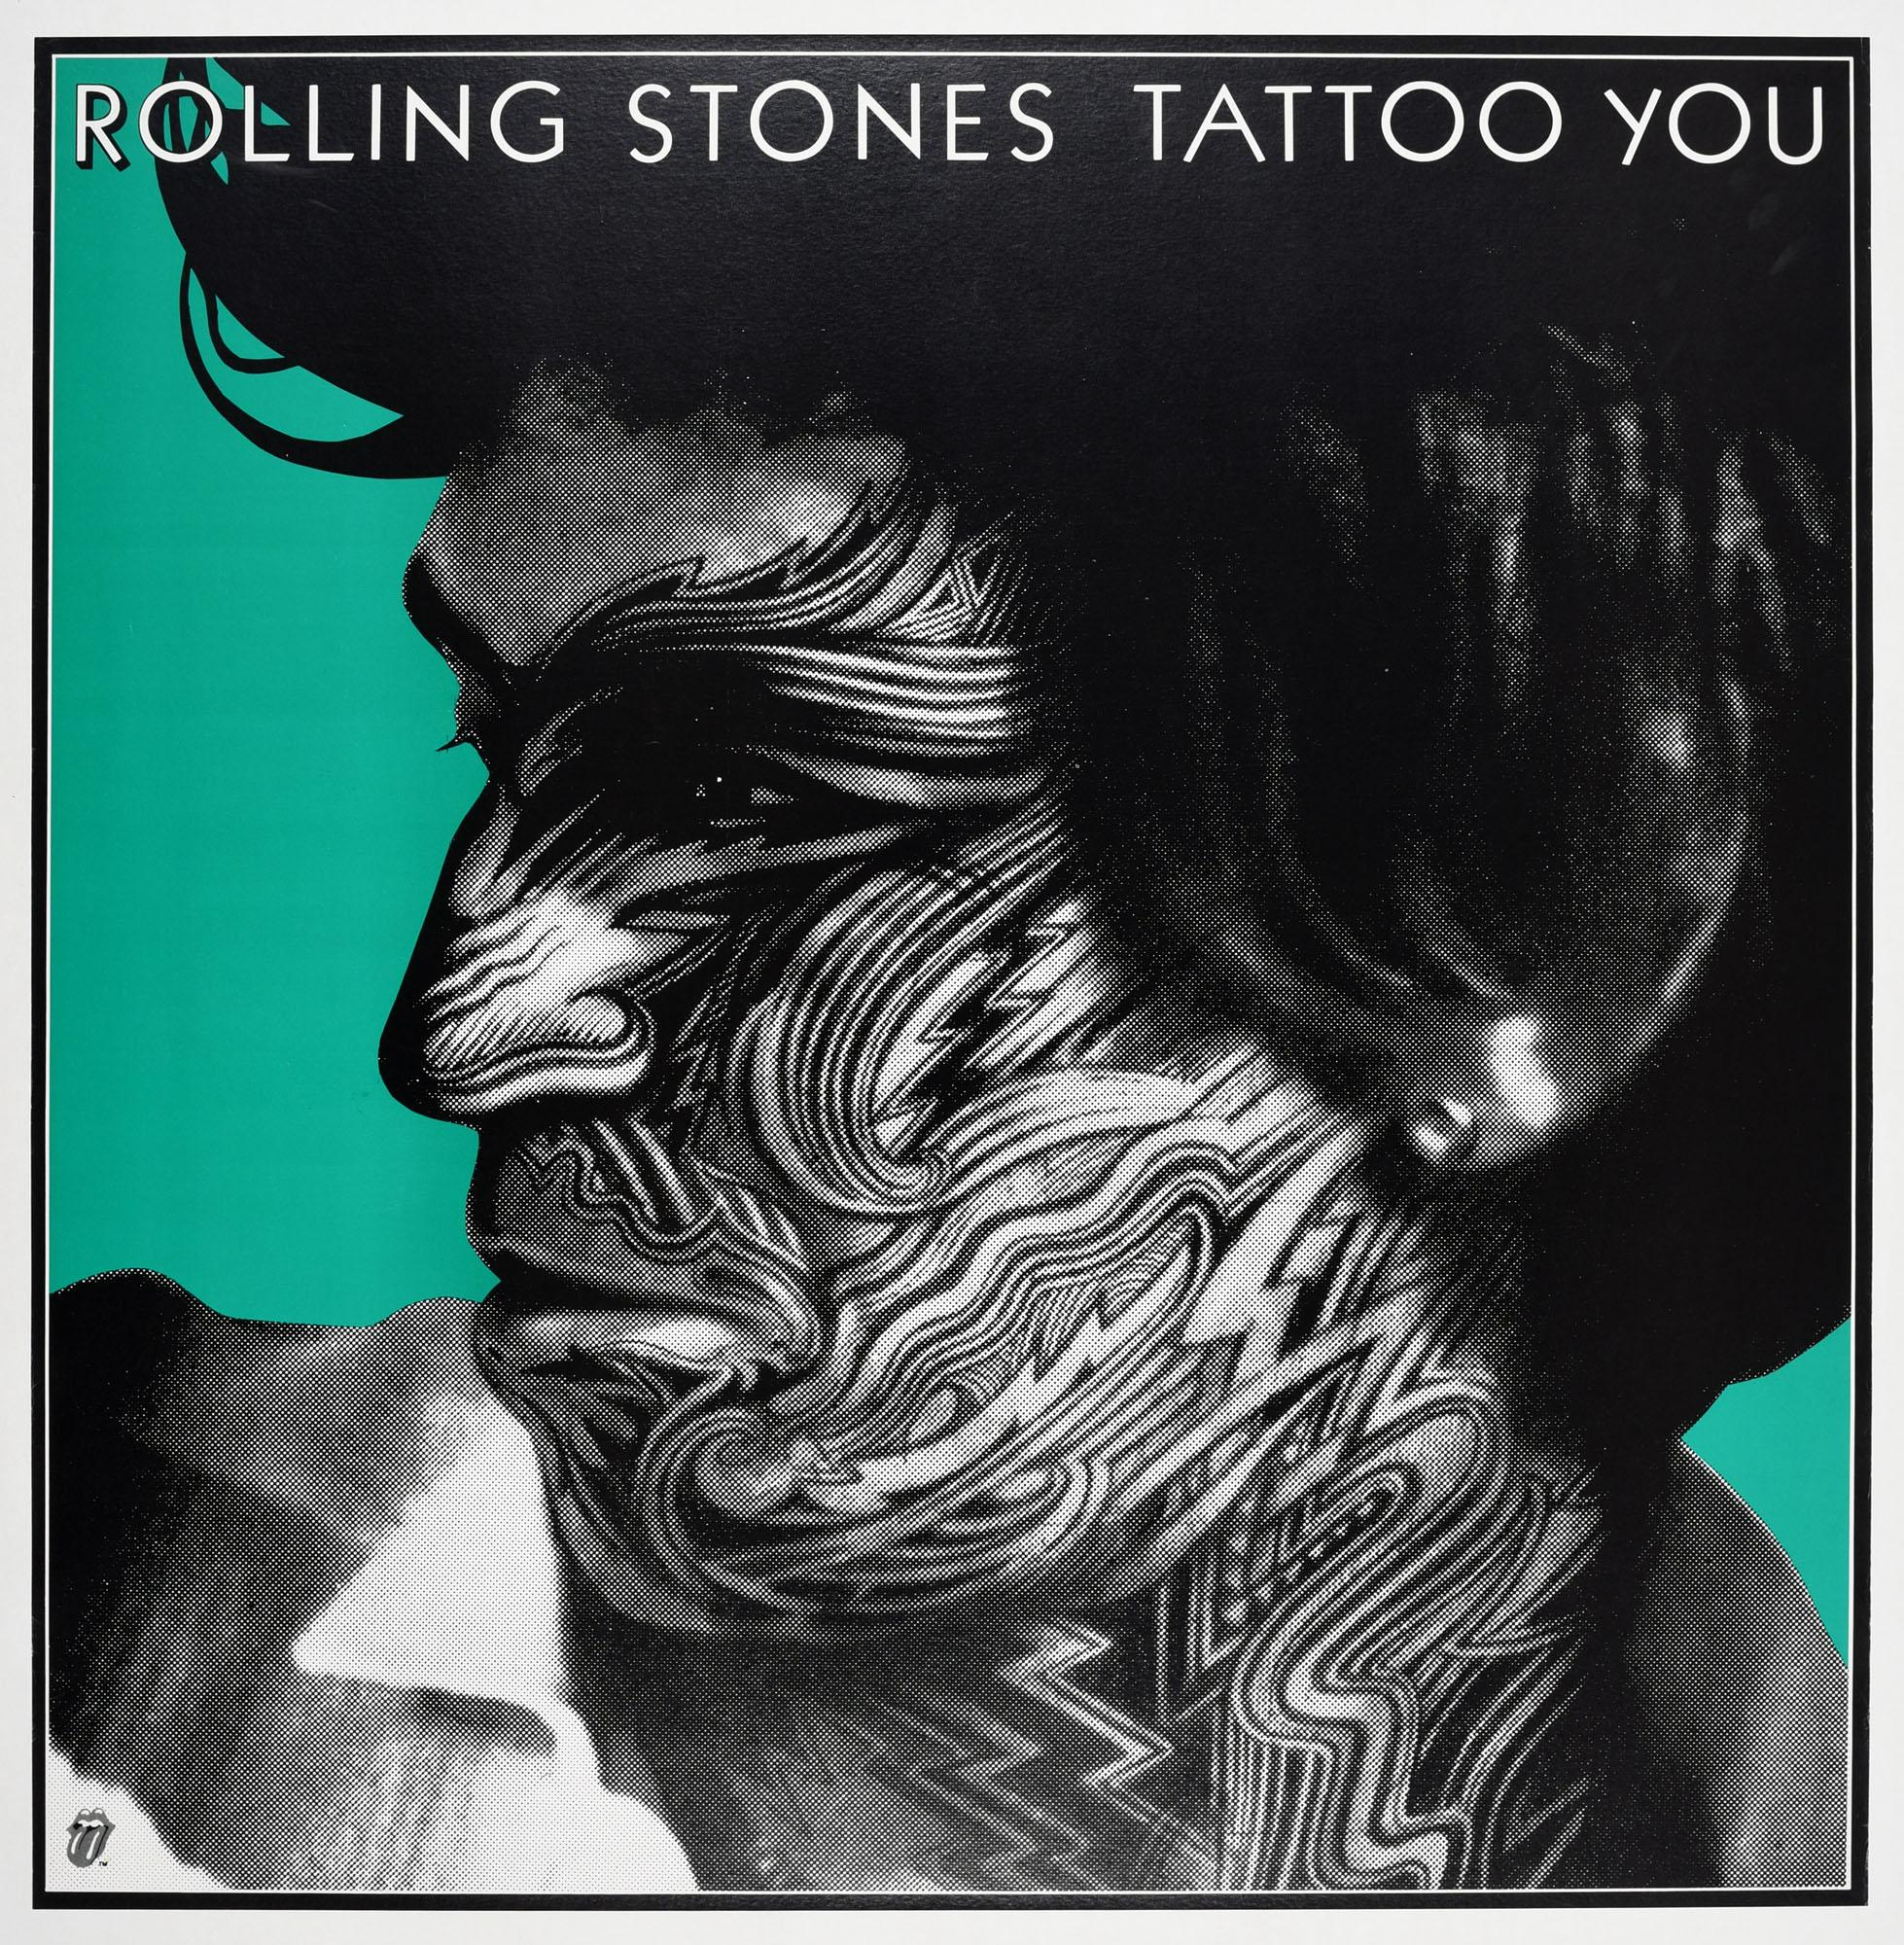 Original Vintage Poster The Rolling Stones Tattoo You Ft Keith Richards Design